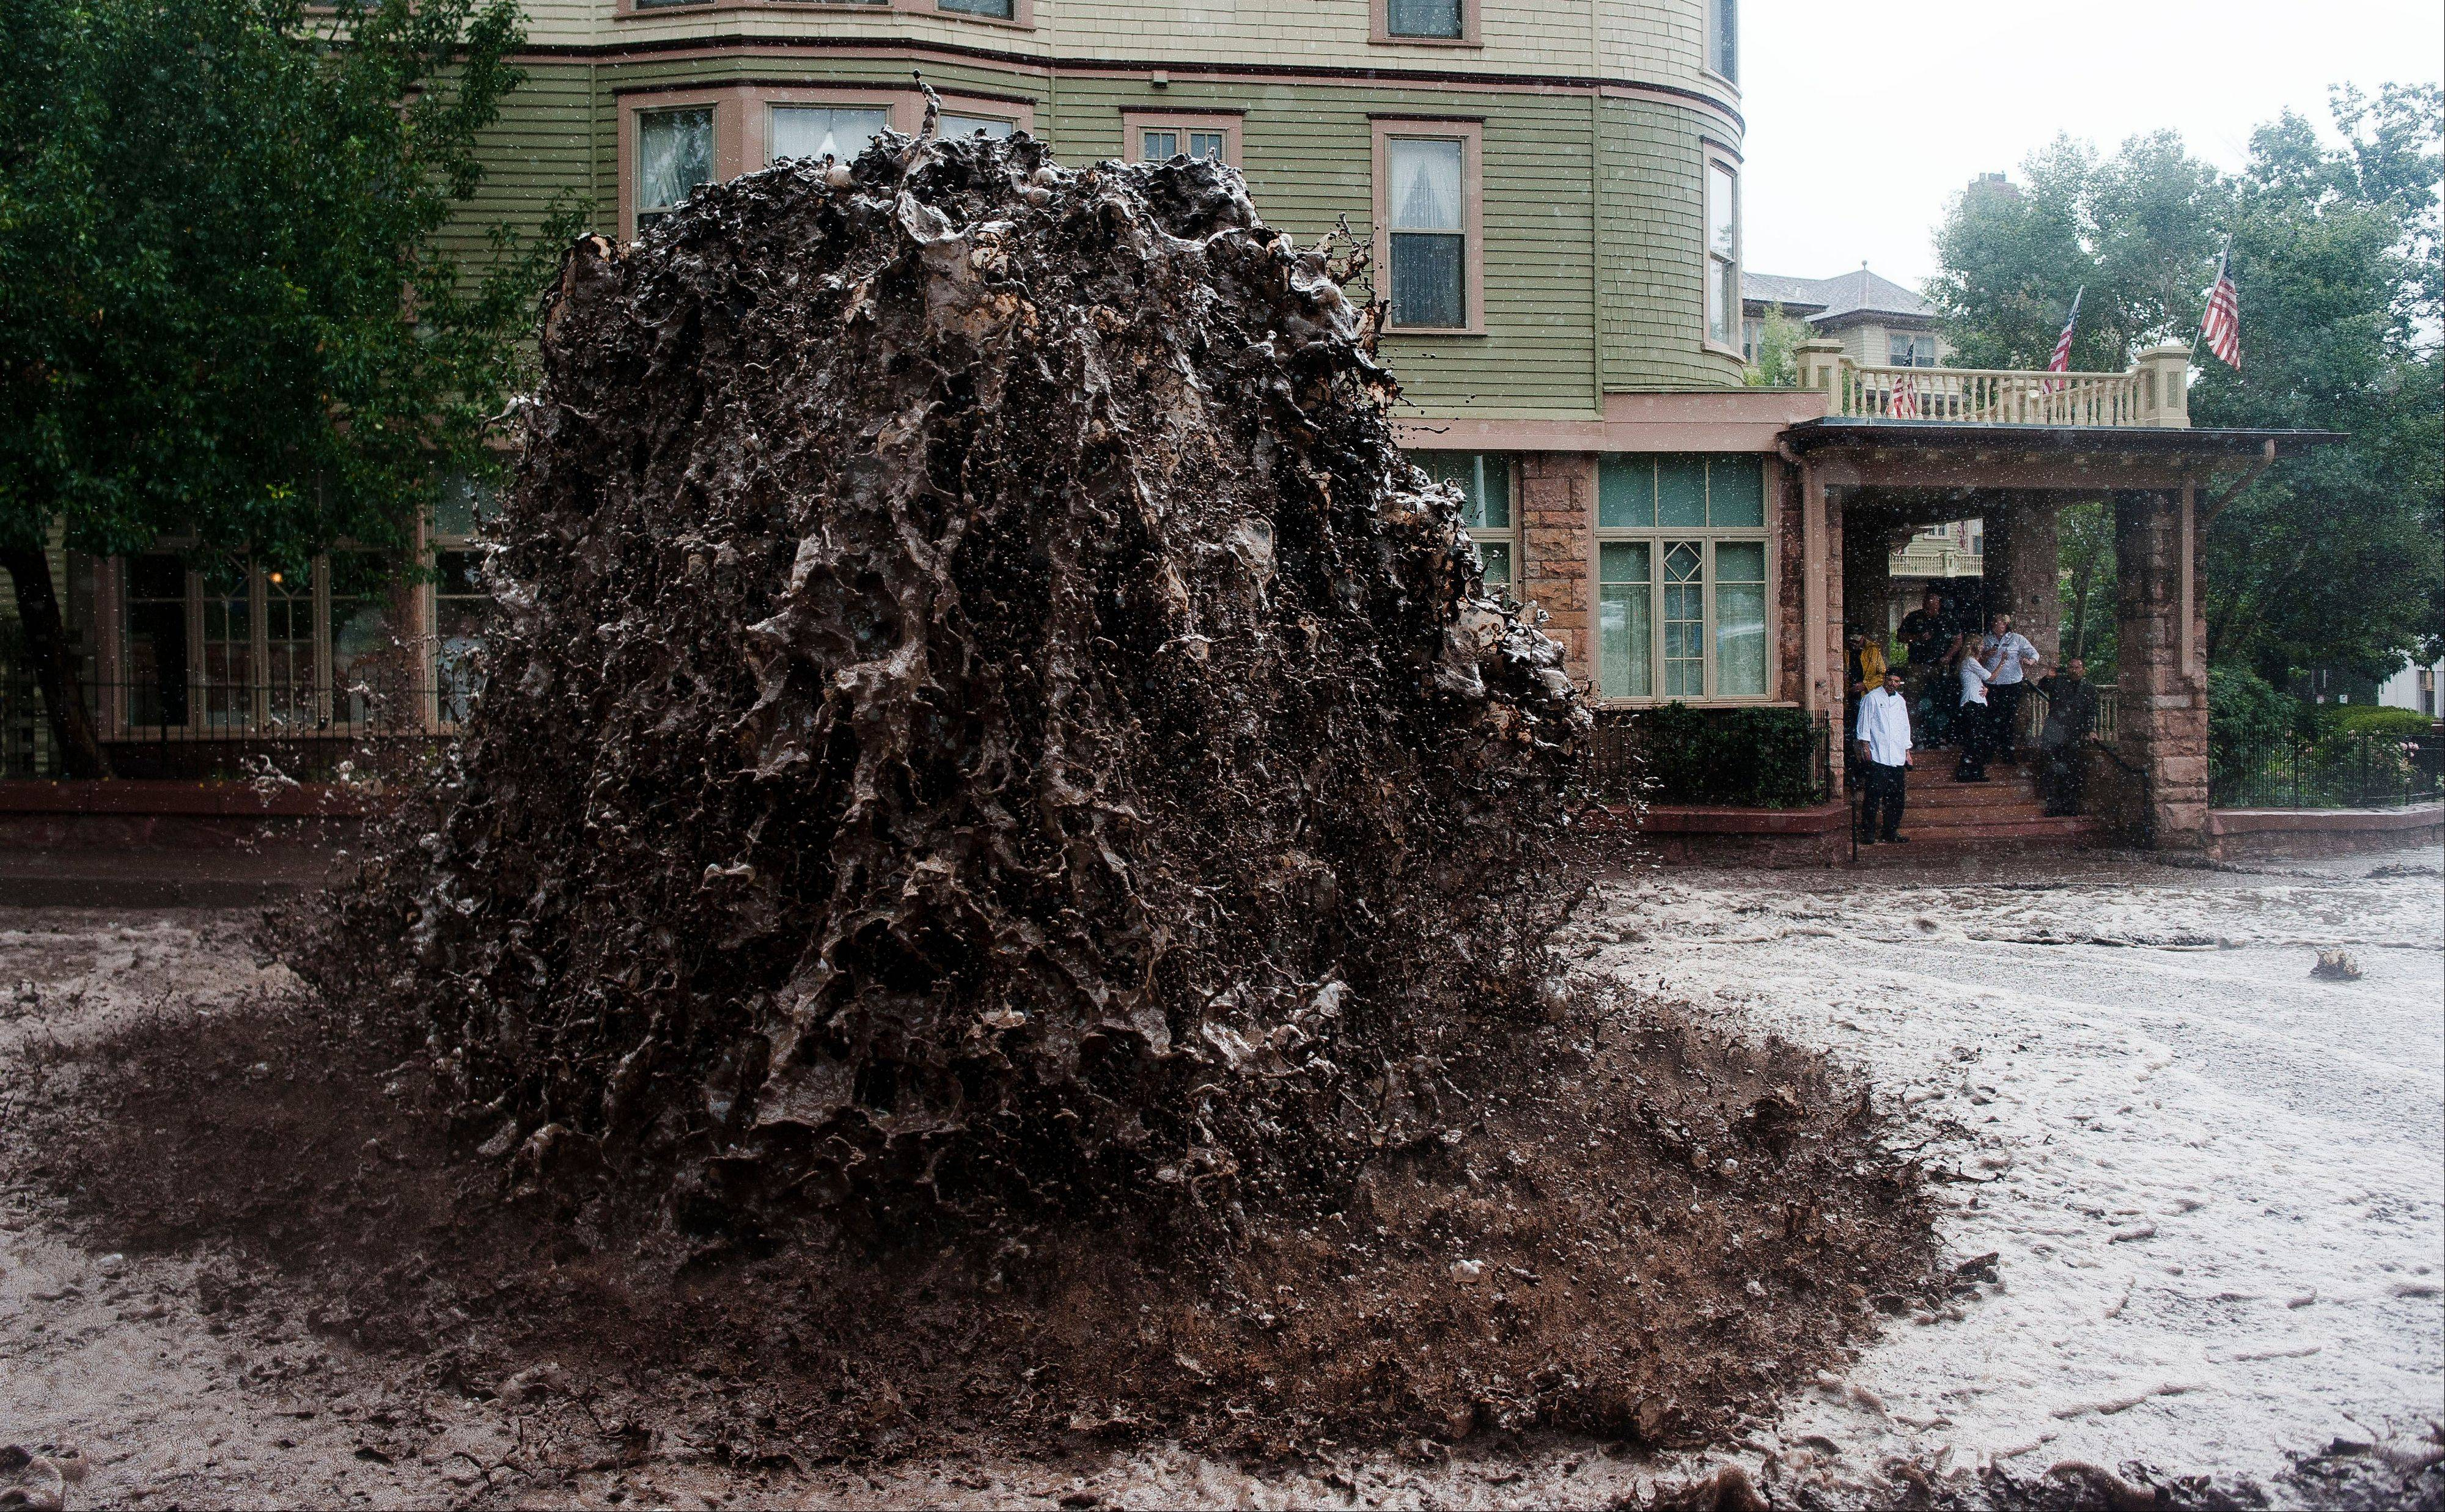 A geyser of flood water shoots out of a sewer on Canon Avenue next to the Cliff House in Manitou Springs, Colo. Thursday, Sept. 12, 2013 as storms continue to dump rain over the Waldo Canyon burn scar.